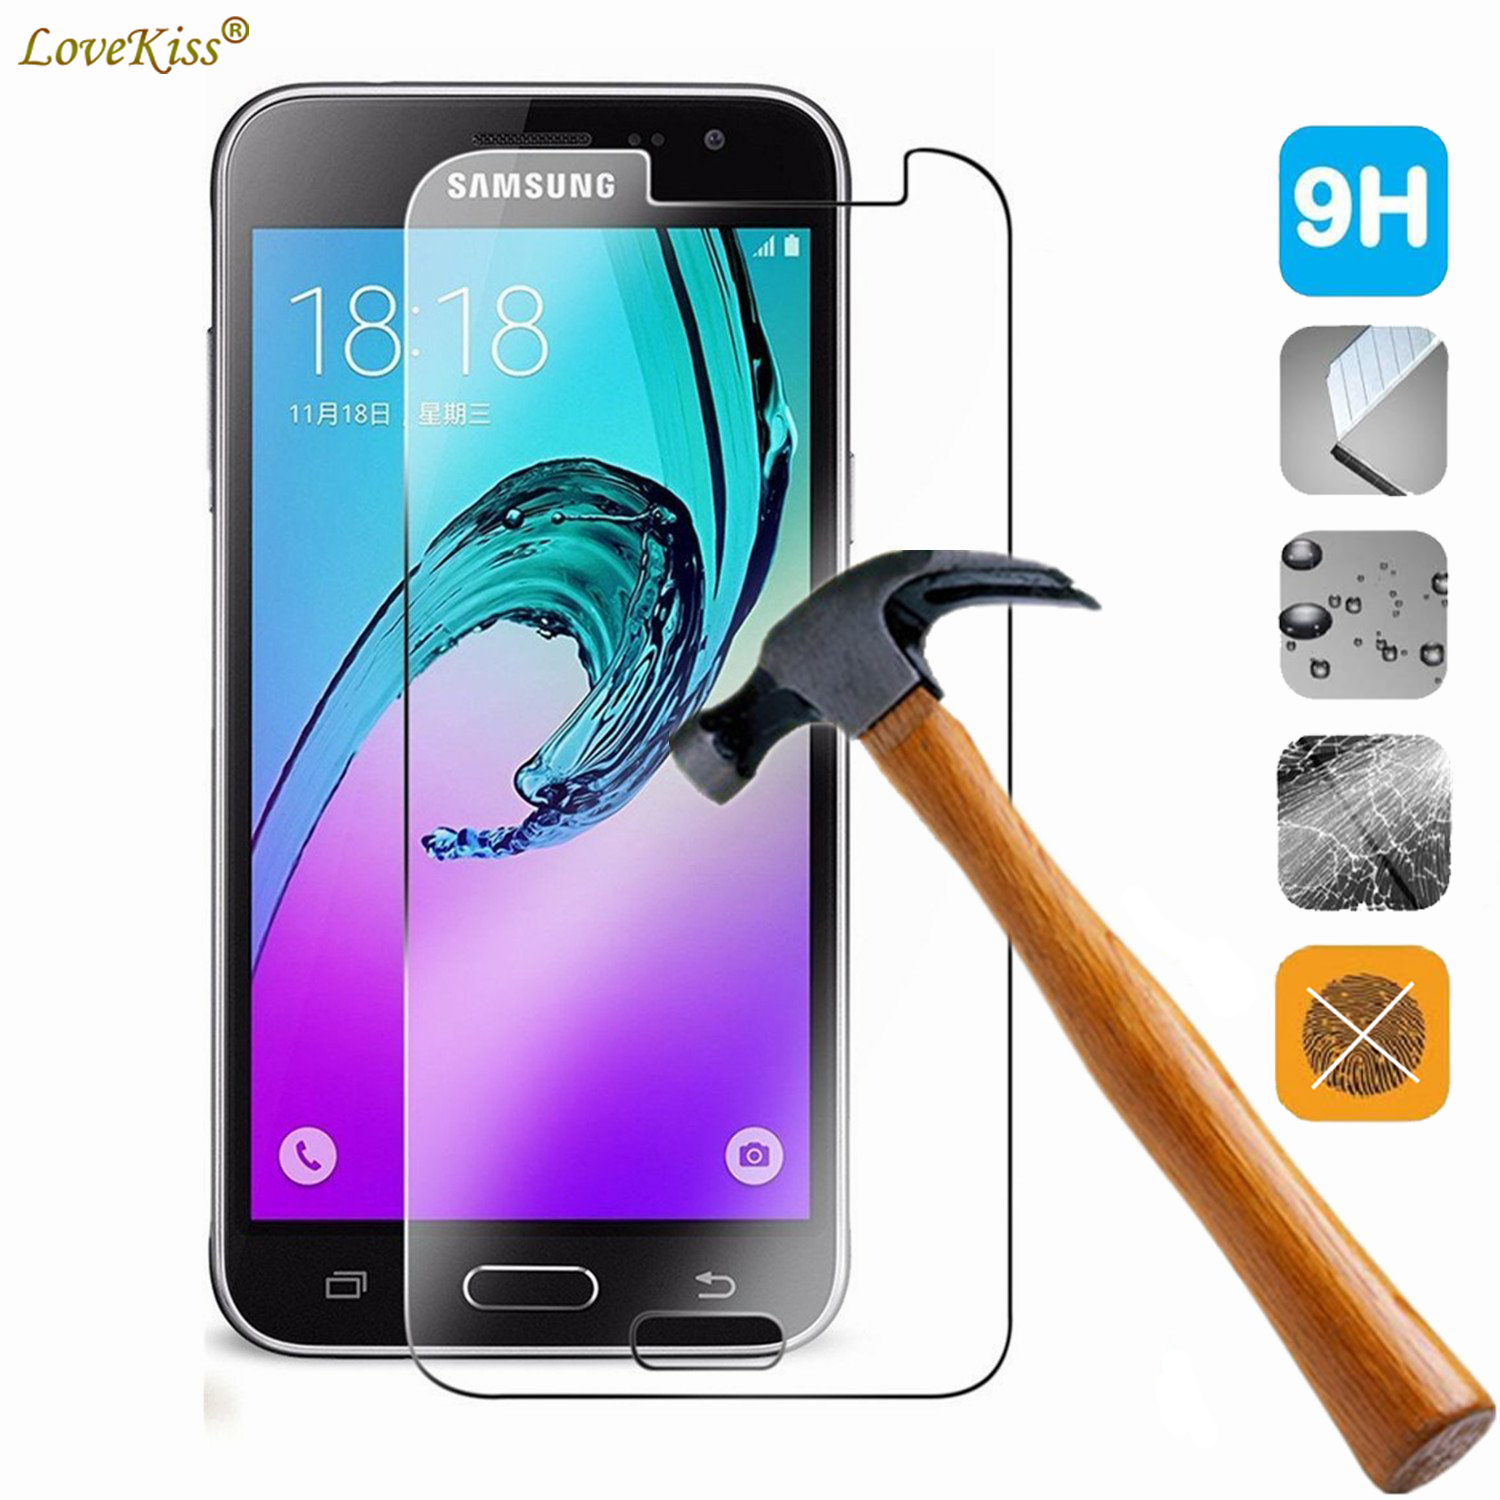 For Samsung Galaxy J3 2016 J320F J310F J300 SM-J320F J320 Screen Protector 9H Tempered Glass Film J3 2016 Protective Case Cover